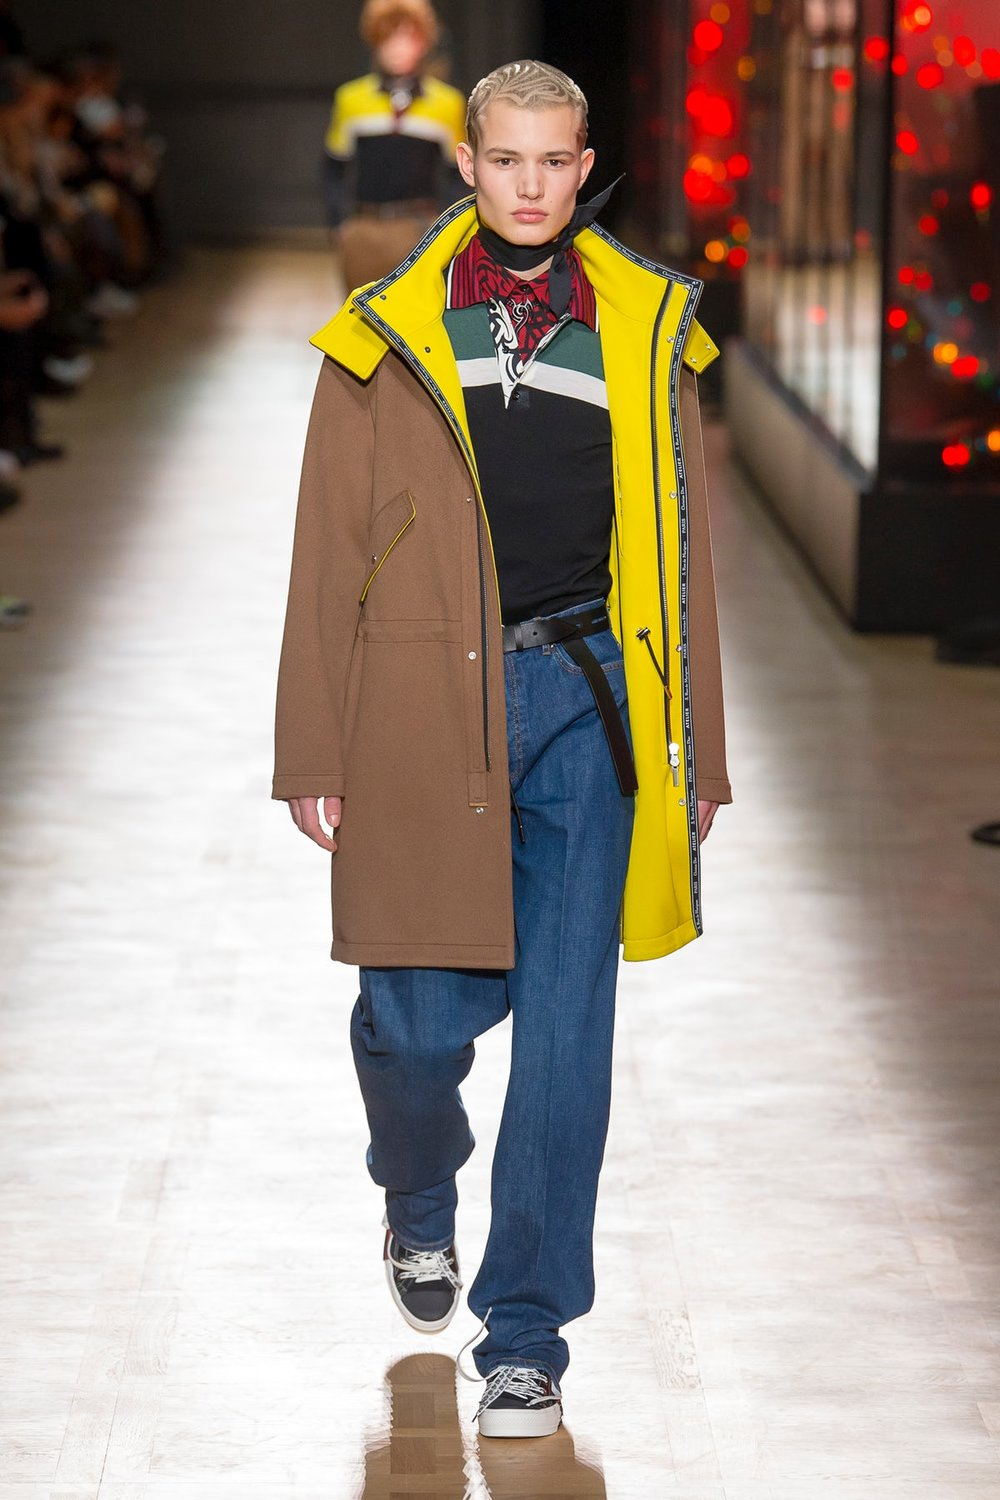 dior_homme_look_33_menswear_autumn_2018.jpeg